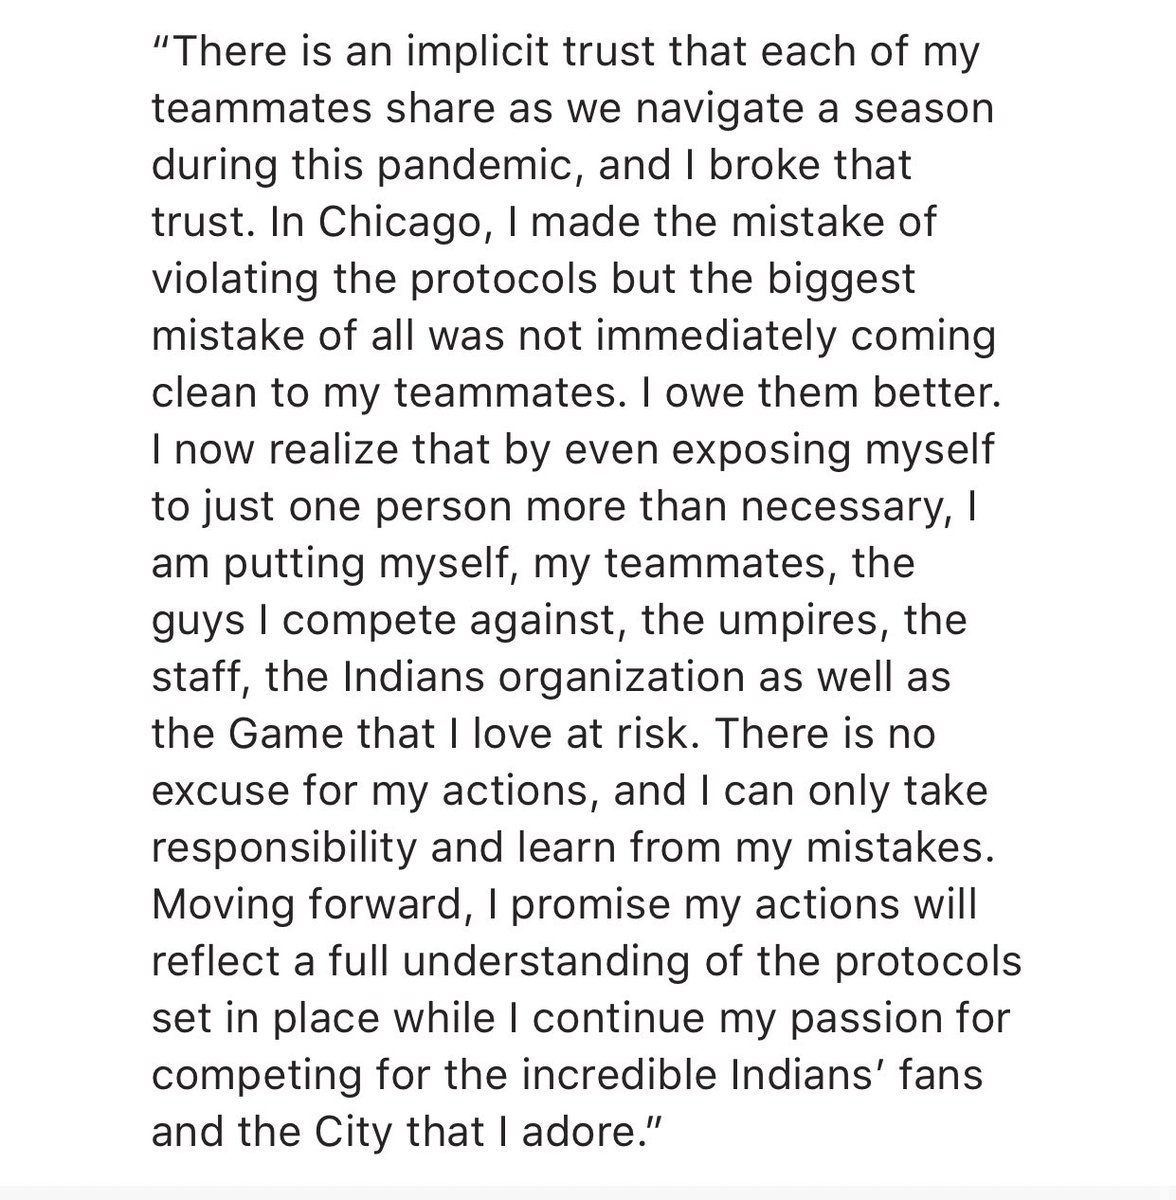 Statement from Mike Clevinger: https://t.co/4stsom0VIA